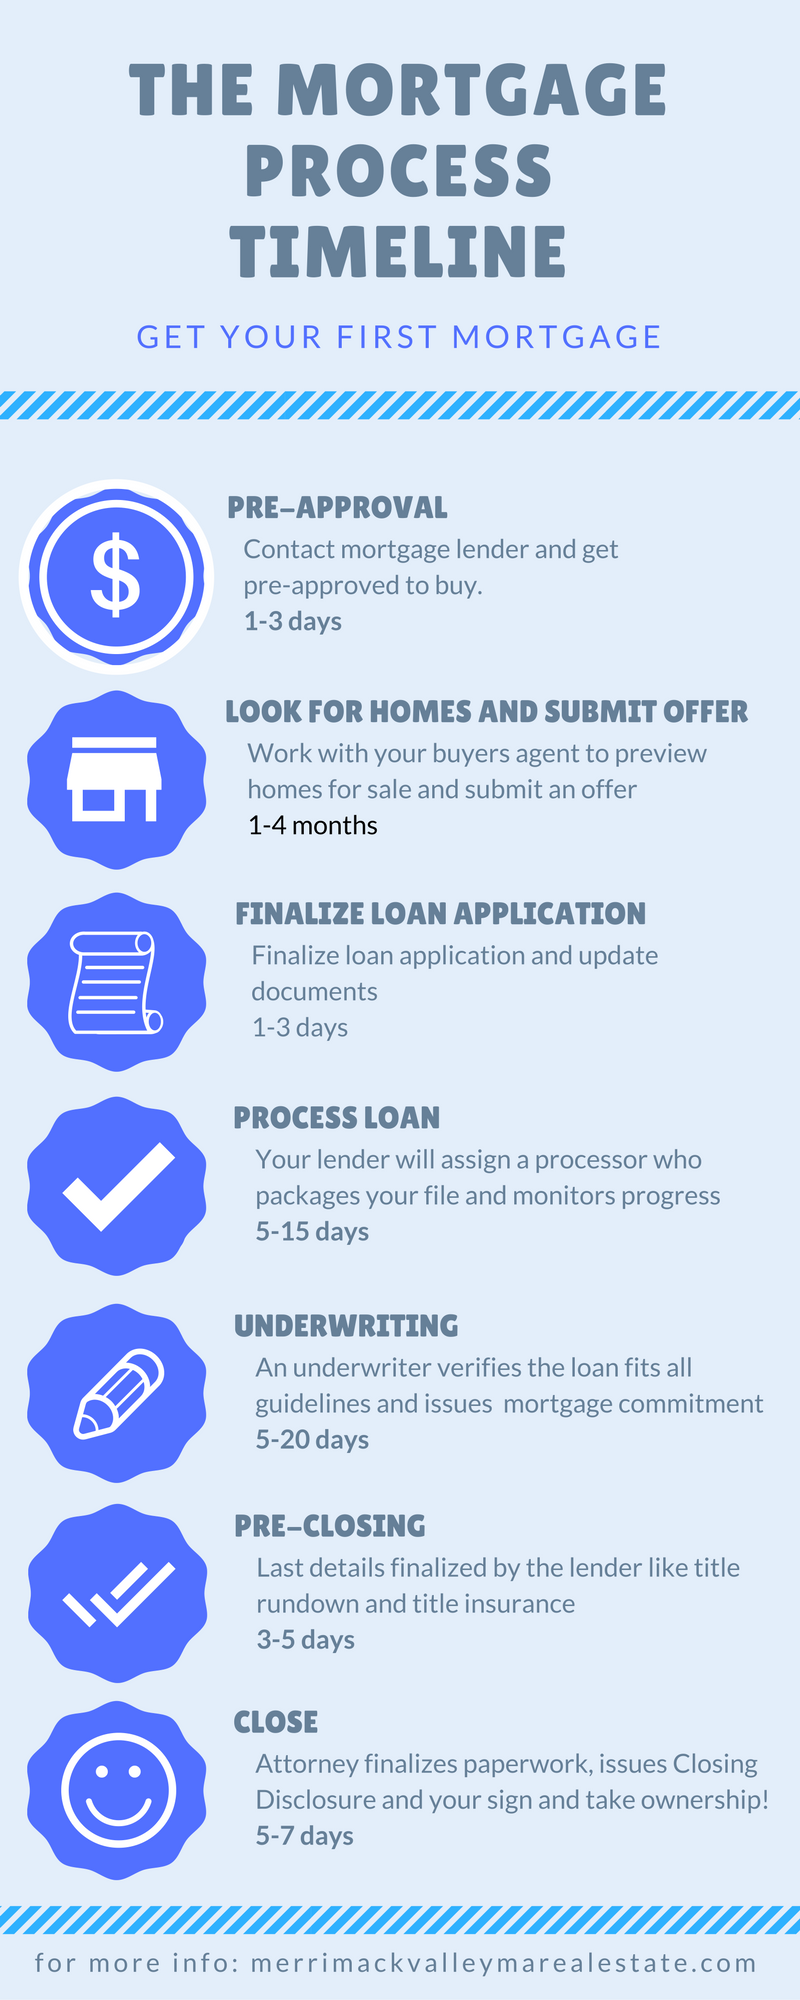 Getting Your First Mortgage When Buying Your First Home Buying Your First Home Home Mortgage Home Buying Process